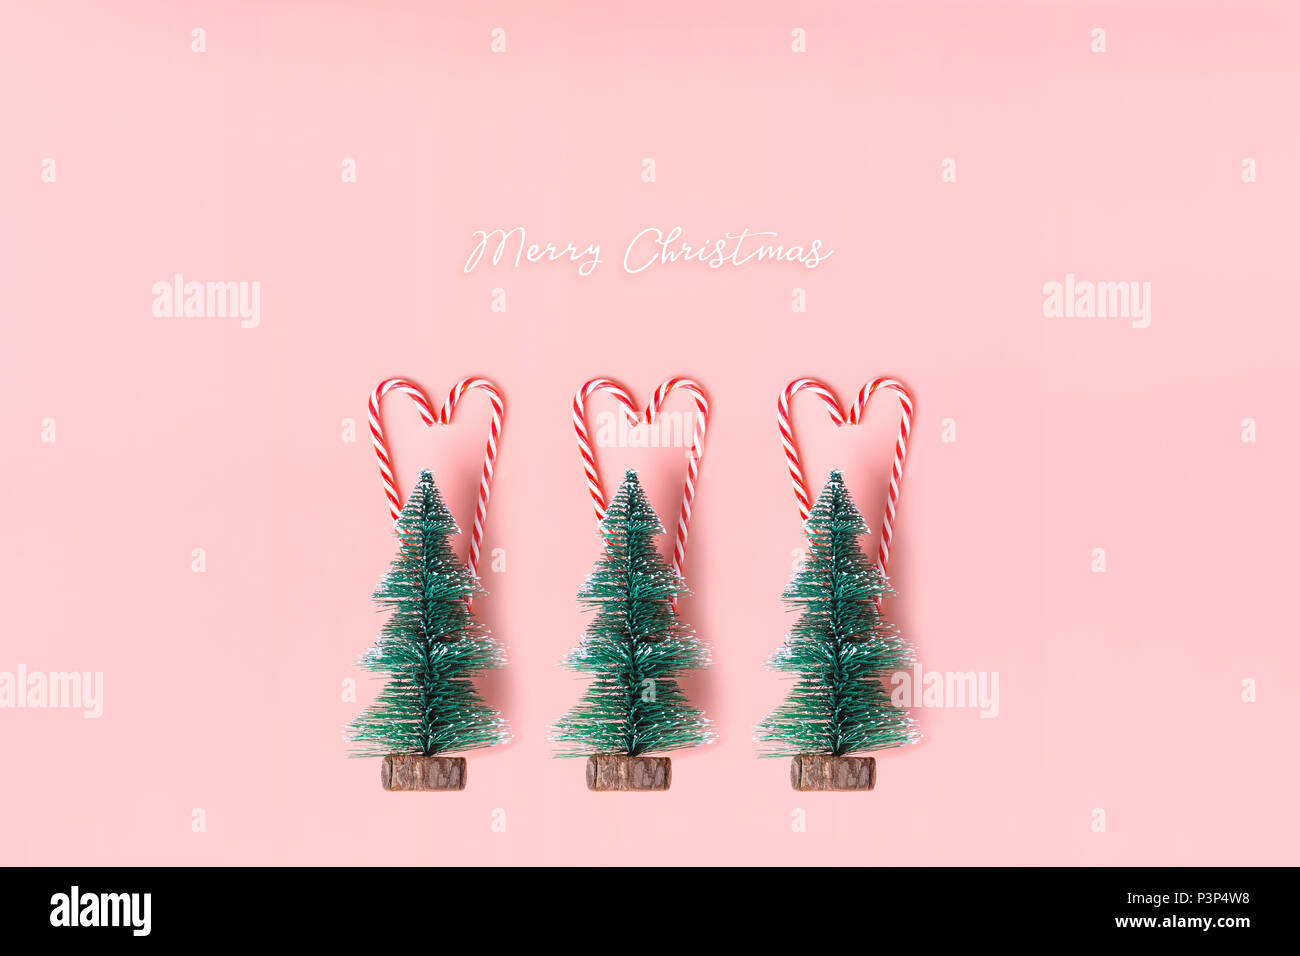 Tree Christmas Tree With Candy Cane Hanging On Pastel Pink Wall With White Merry Christmas Word Holiday Festive Celebration Greeting Card Stock Photo Alamy